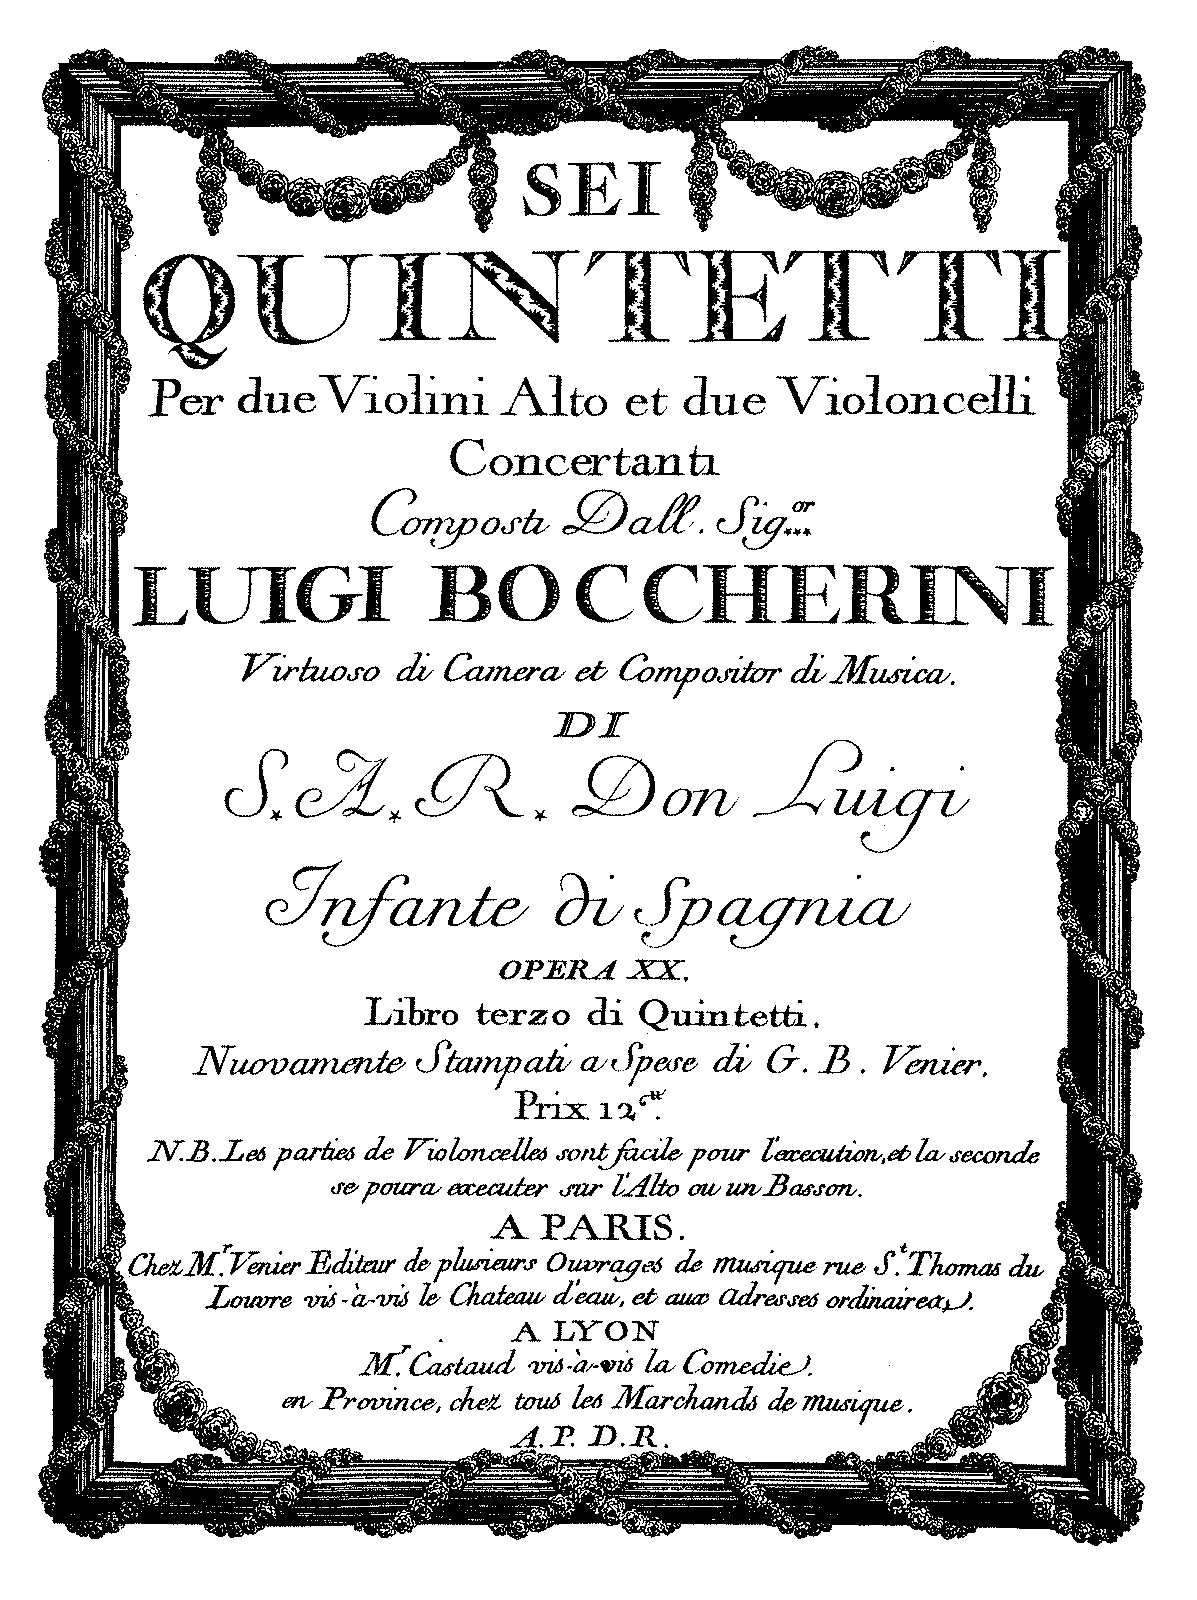 PMLP143770-Boccherini - Quintet Op13 No3 for 2Violins Viola 2Cellos G279 in FM violin1.pdf